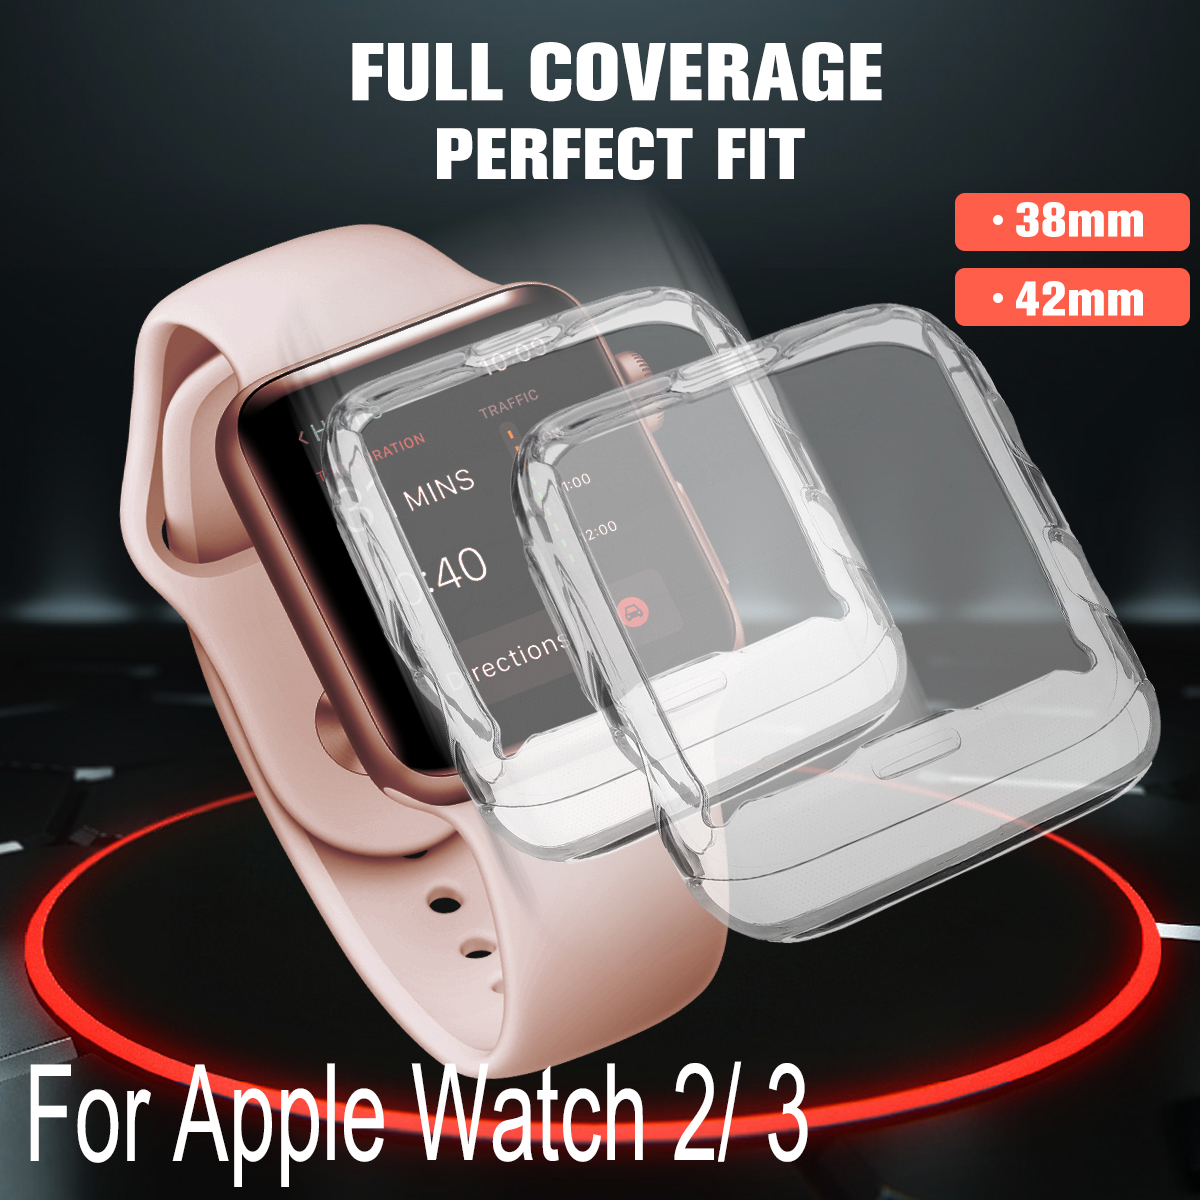 Cell Phones & Accessories 42 Mm Clear Tpu Full Cover Case Screen Protector For Samsung Galaxy Watch